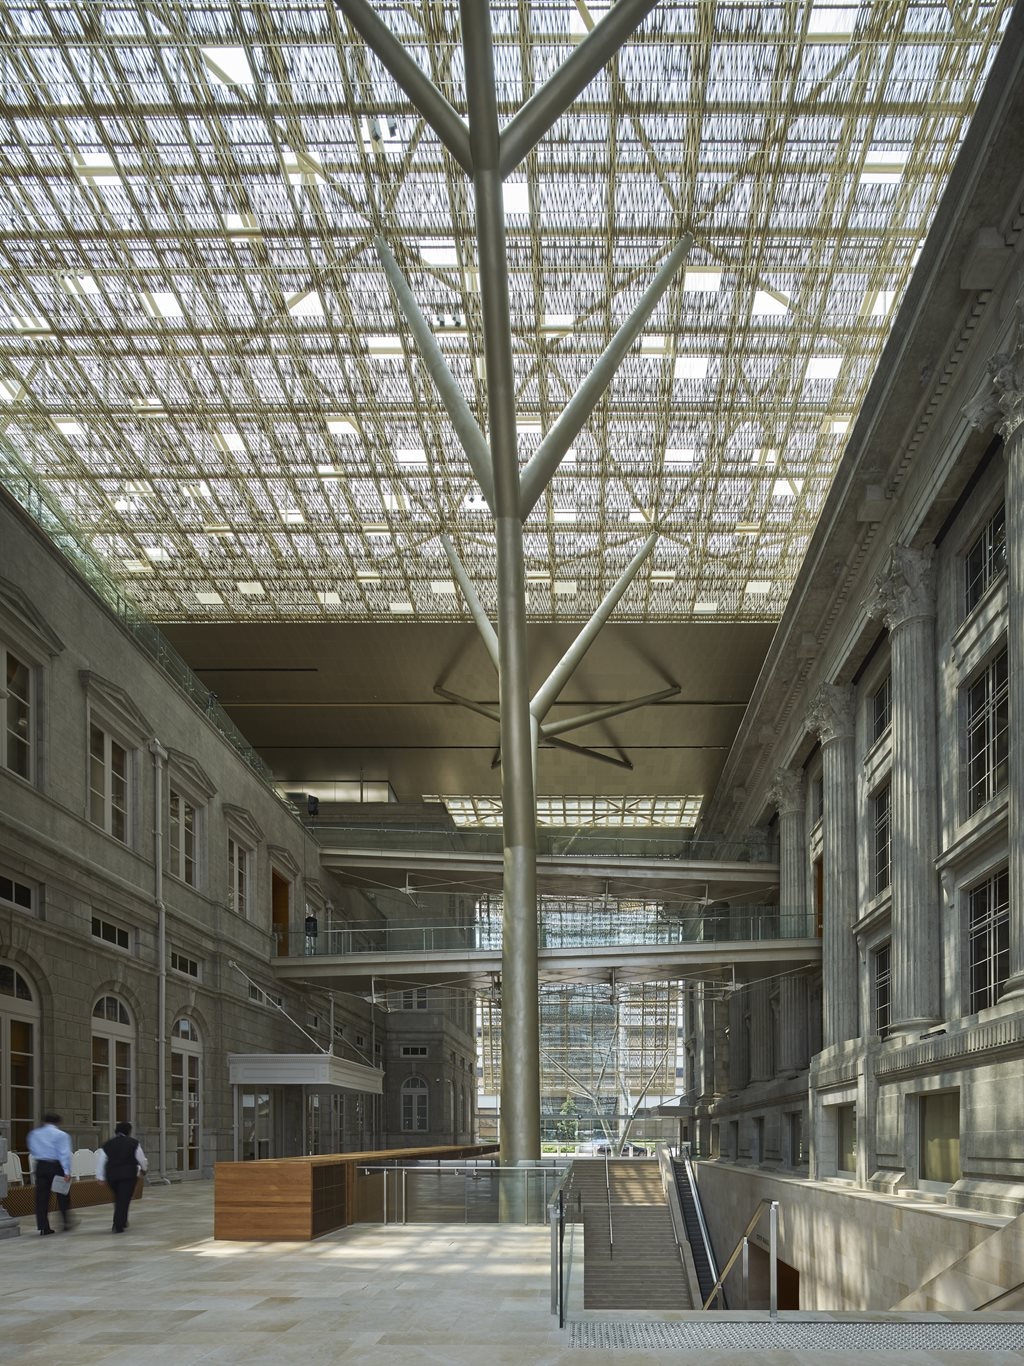 005-NGS-entrance-atrium-between-the-two-historical-buildings.jpg